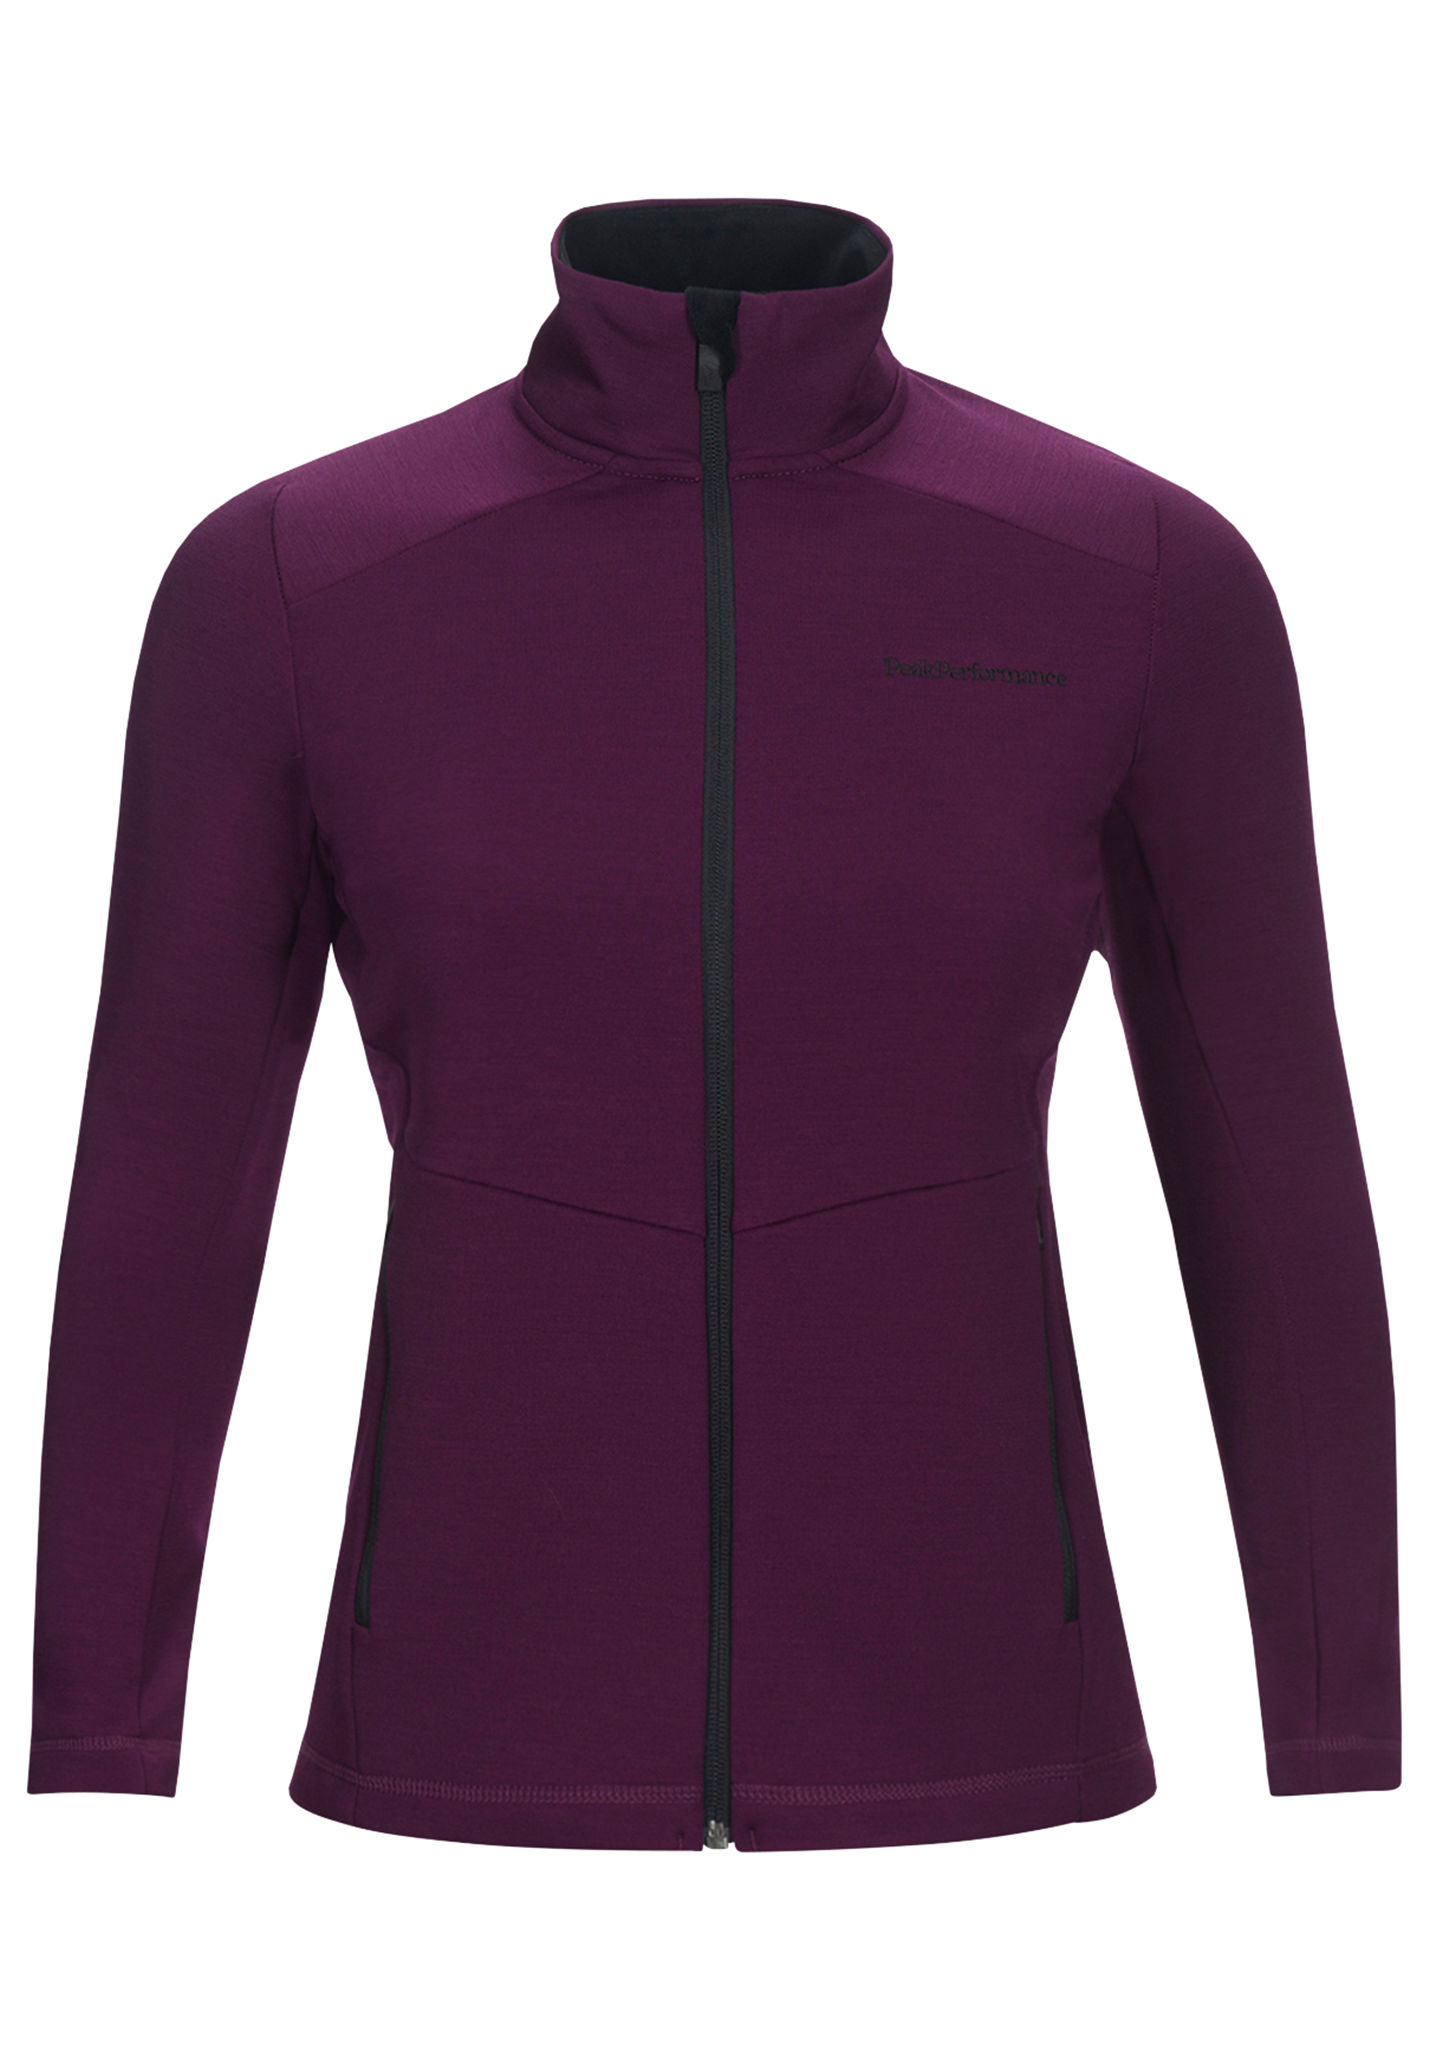 99816c2b PEAK PERFORMANCE Helo - Functional Top for Women - Purple - Planet Sports